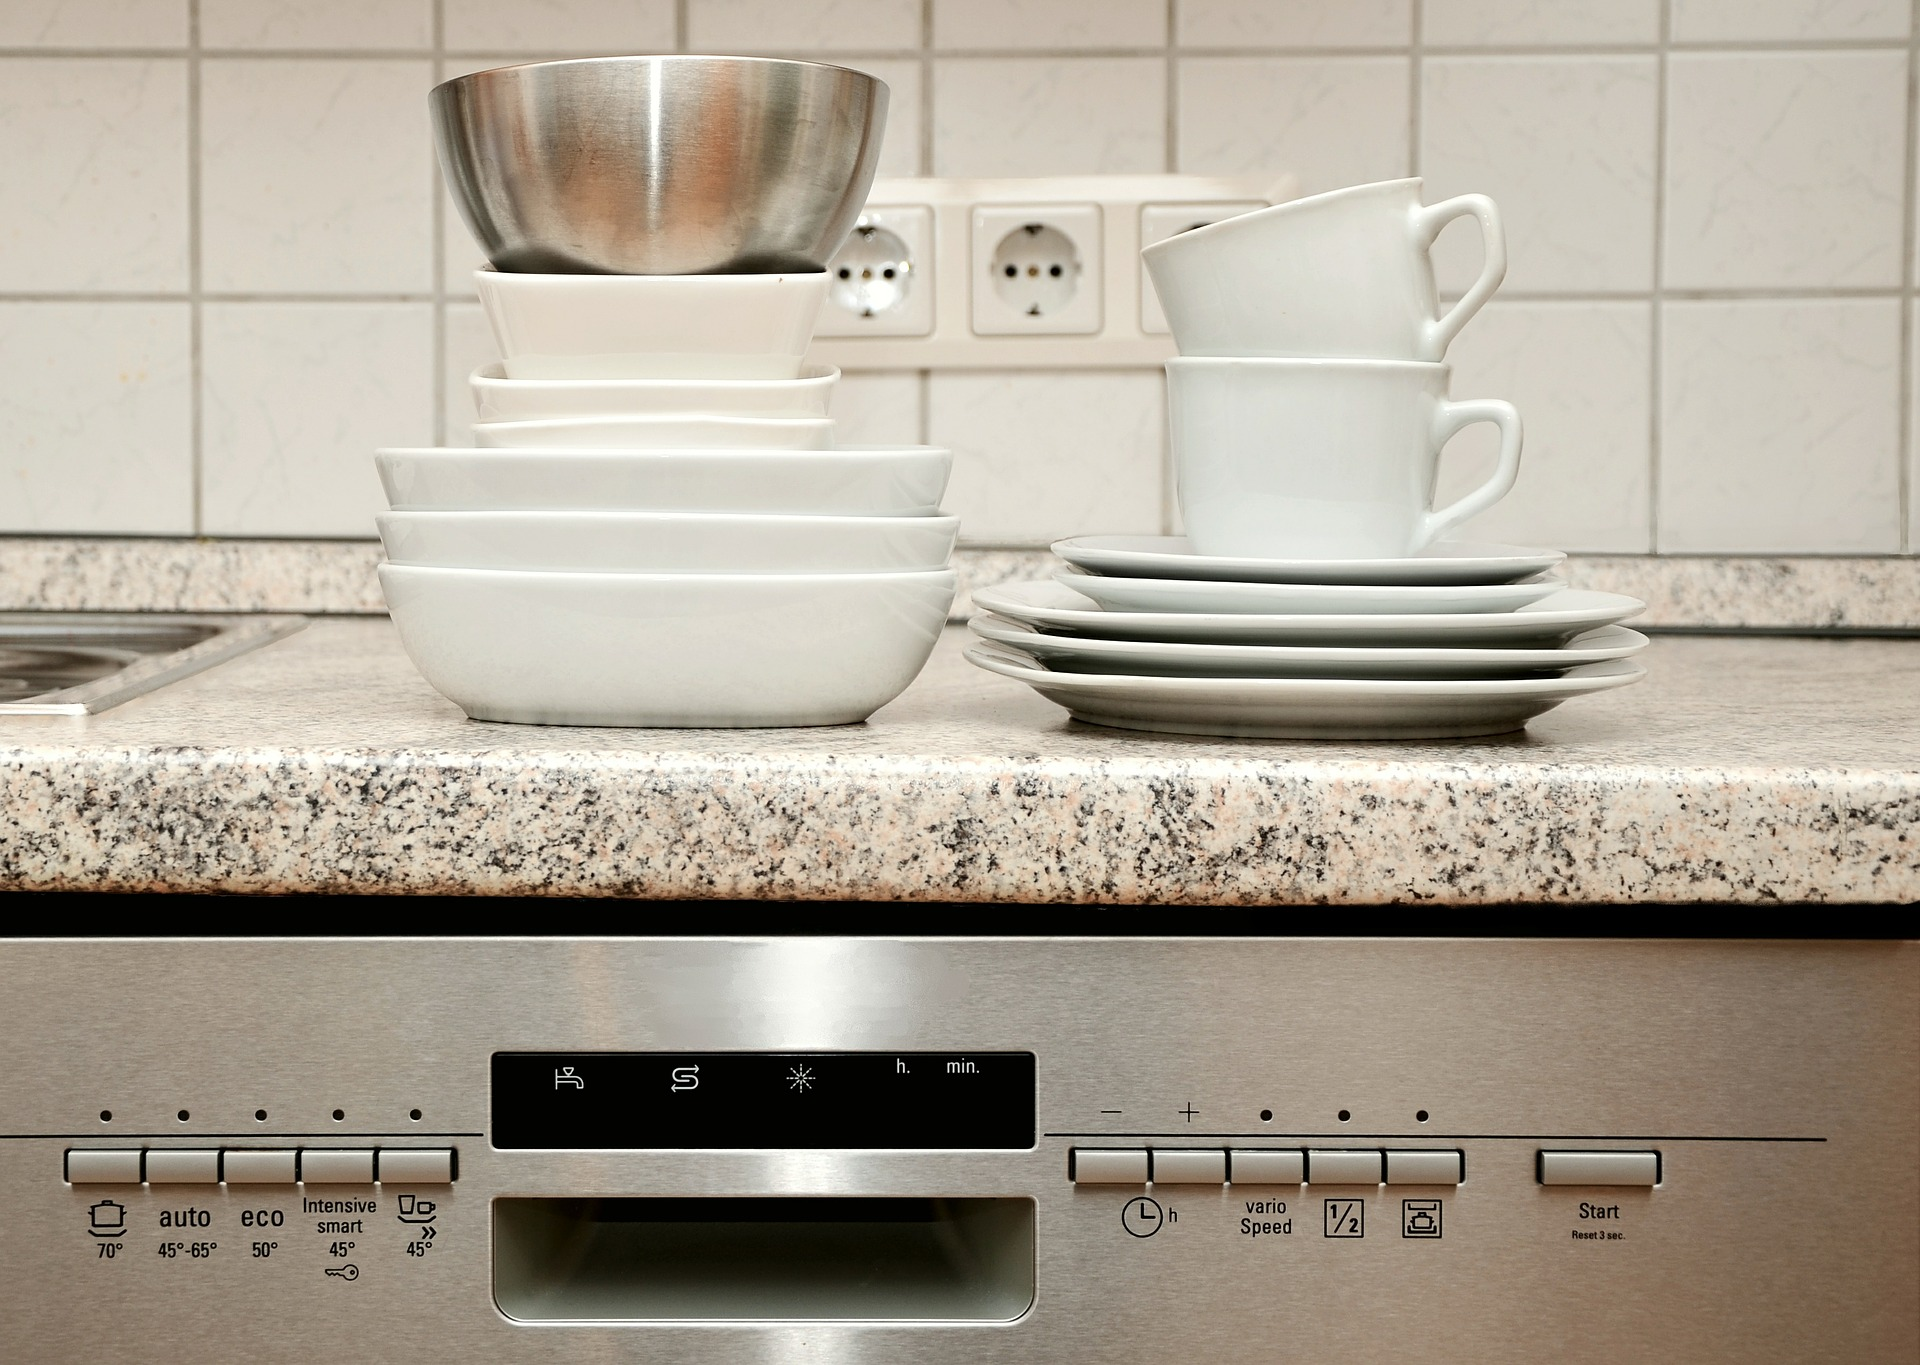 clean plates and mugs washed from whirlpool WDT720PADM dishwasher